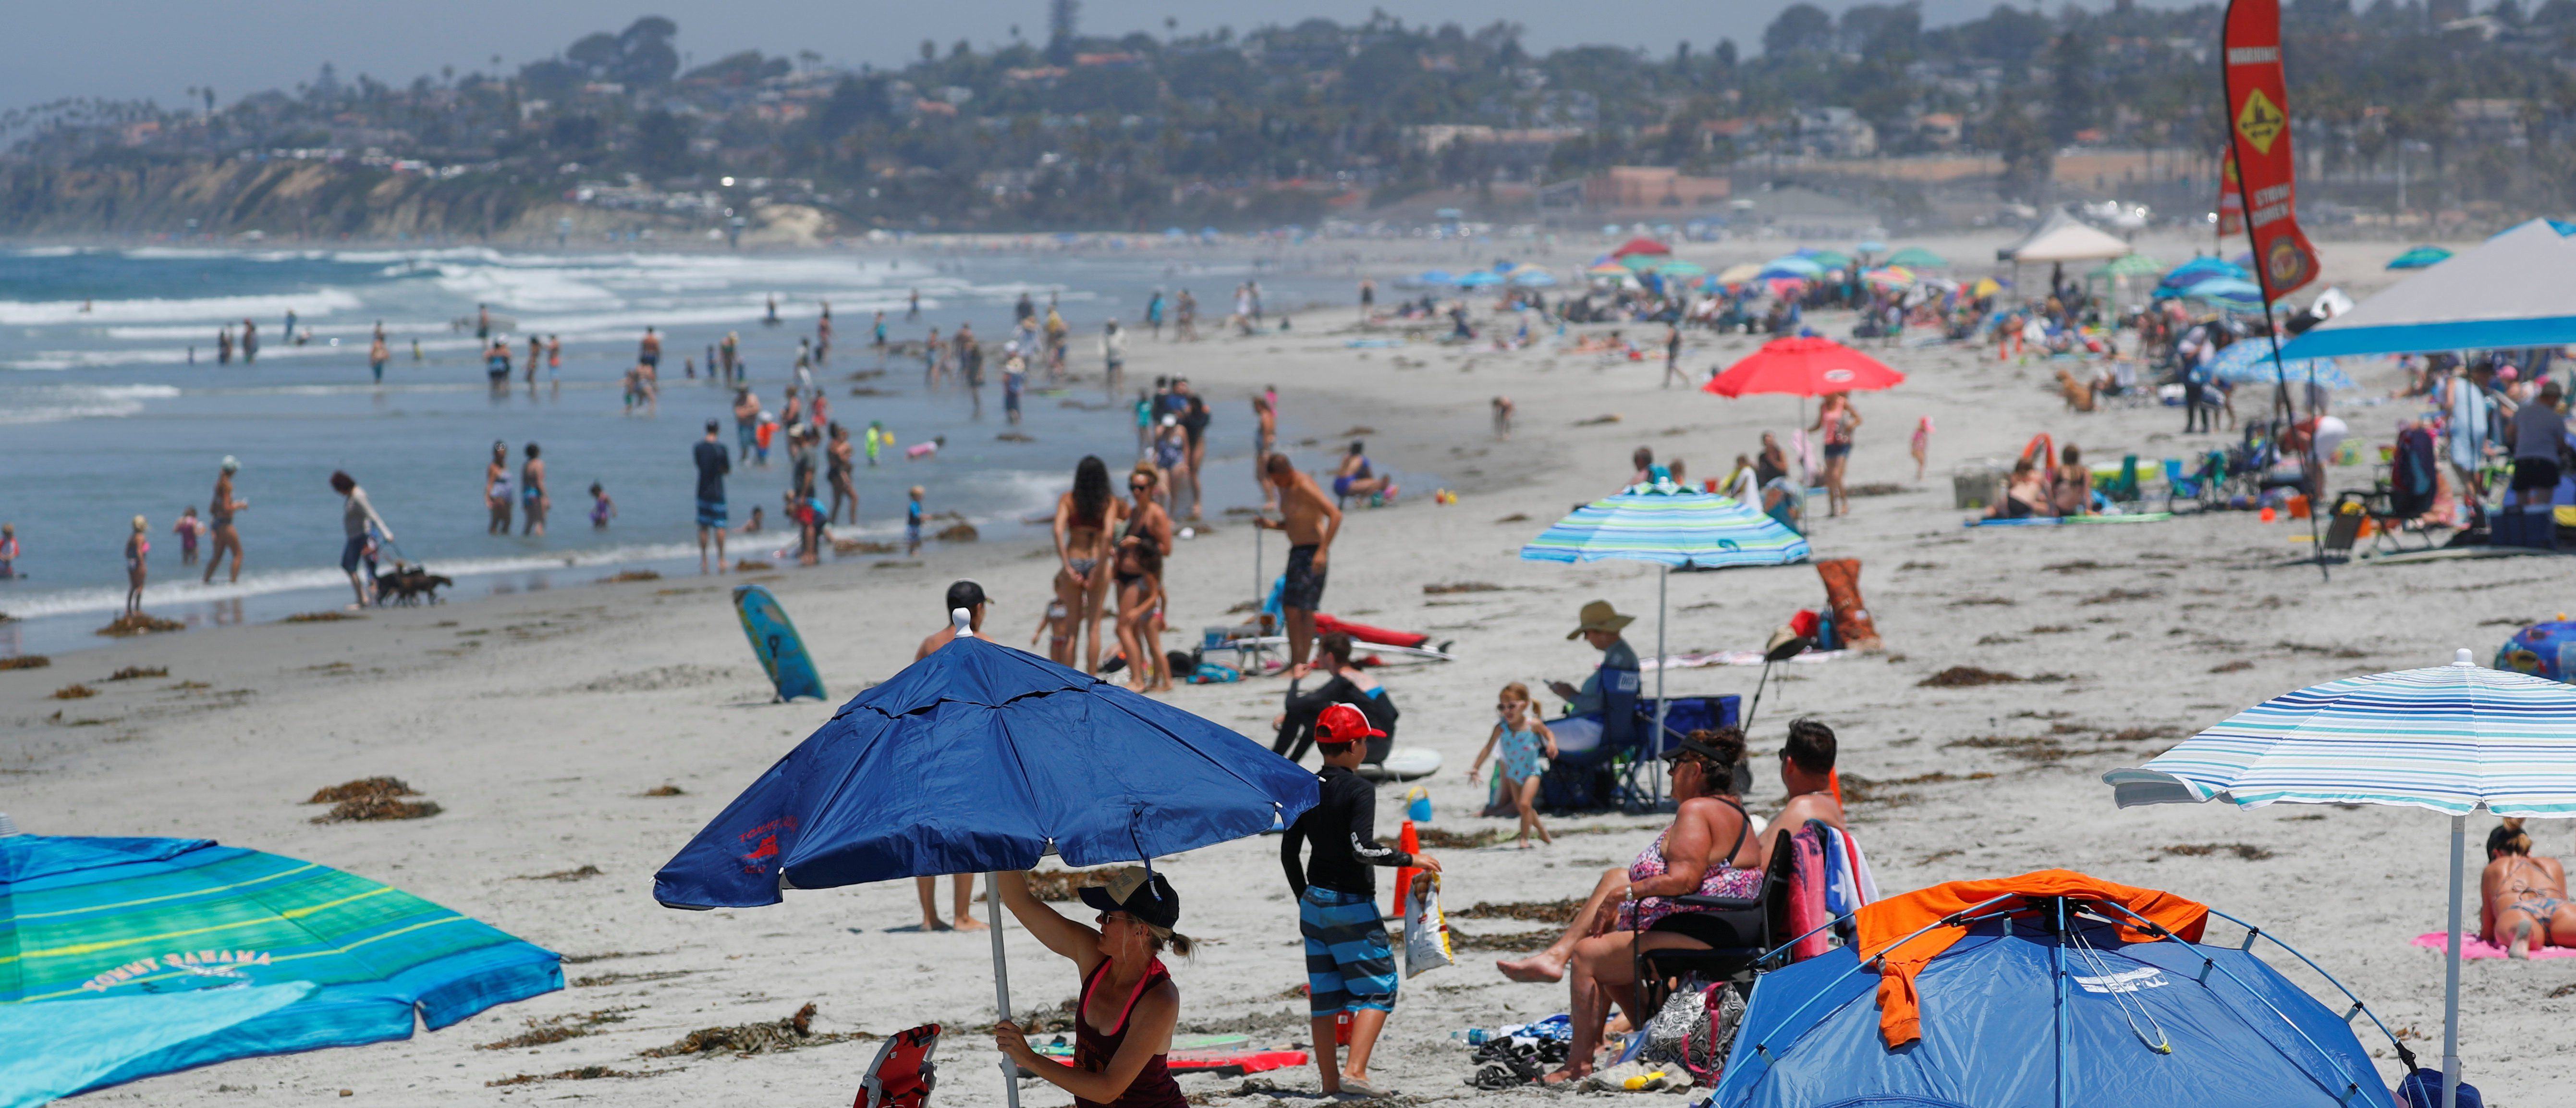 Claim La S Record Heat Wave Was Compromised And Likely Wrong Weather Station Los Angeles Temperatures